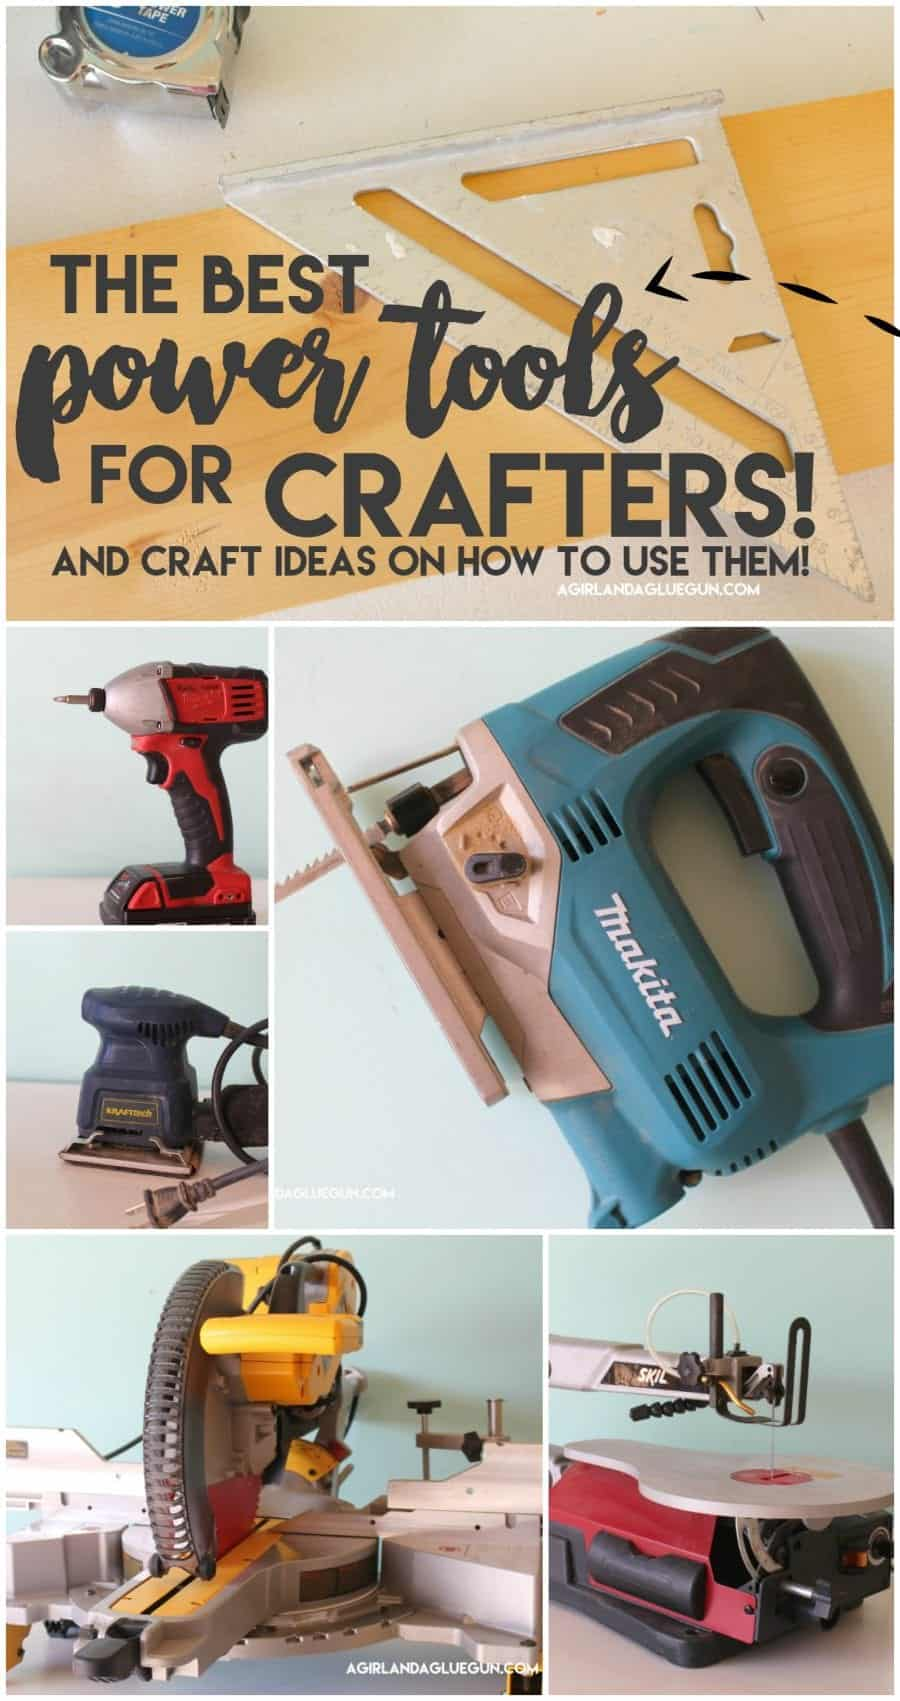 the very best power tools you need for crafting!